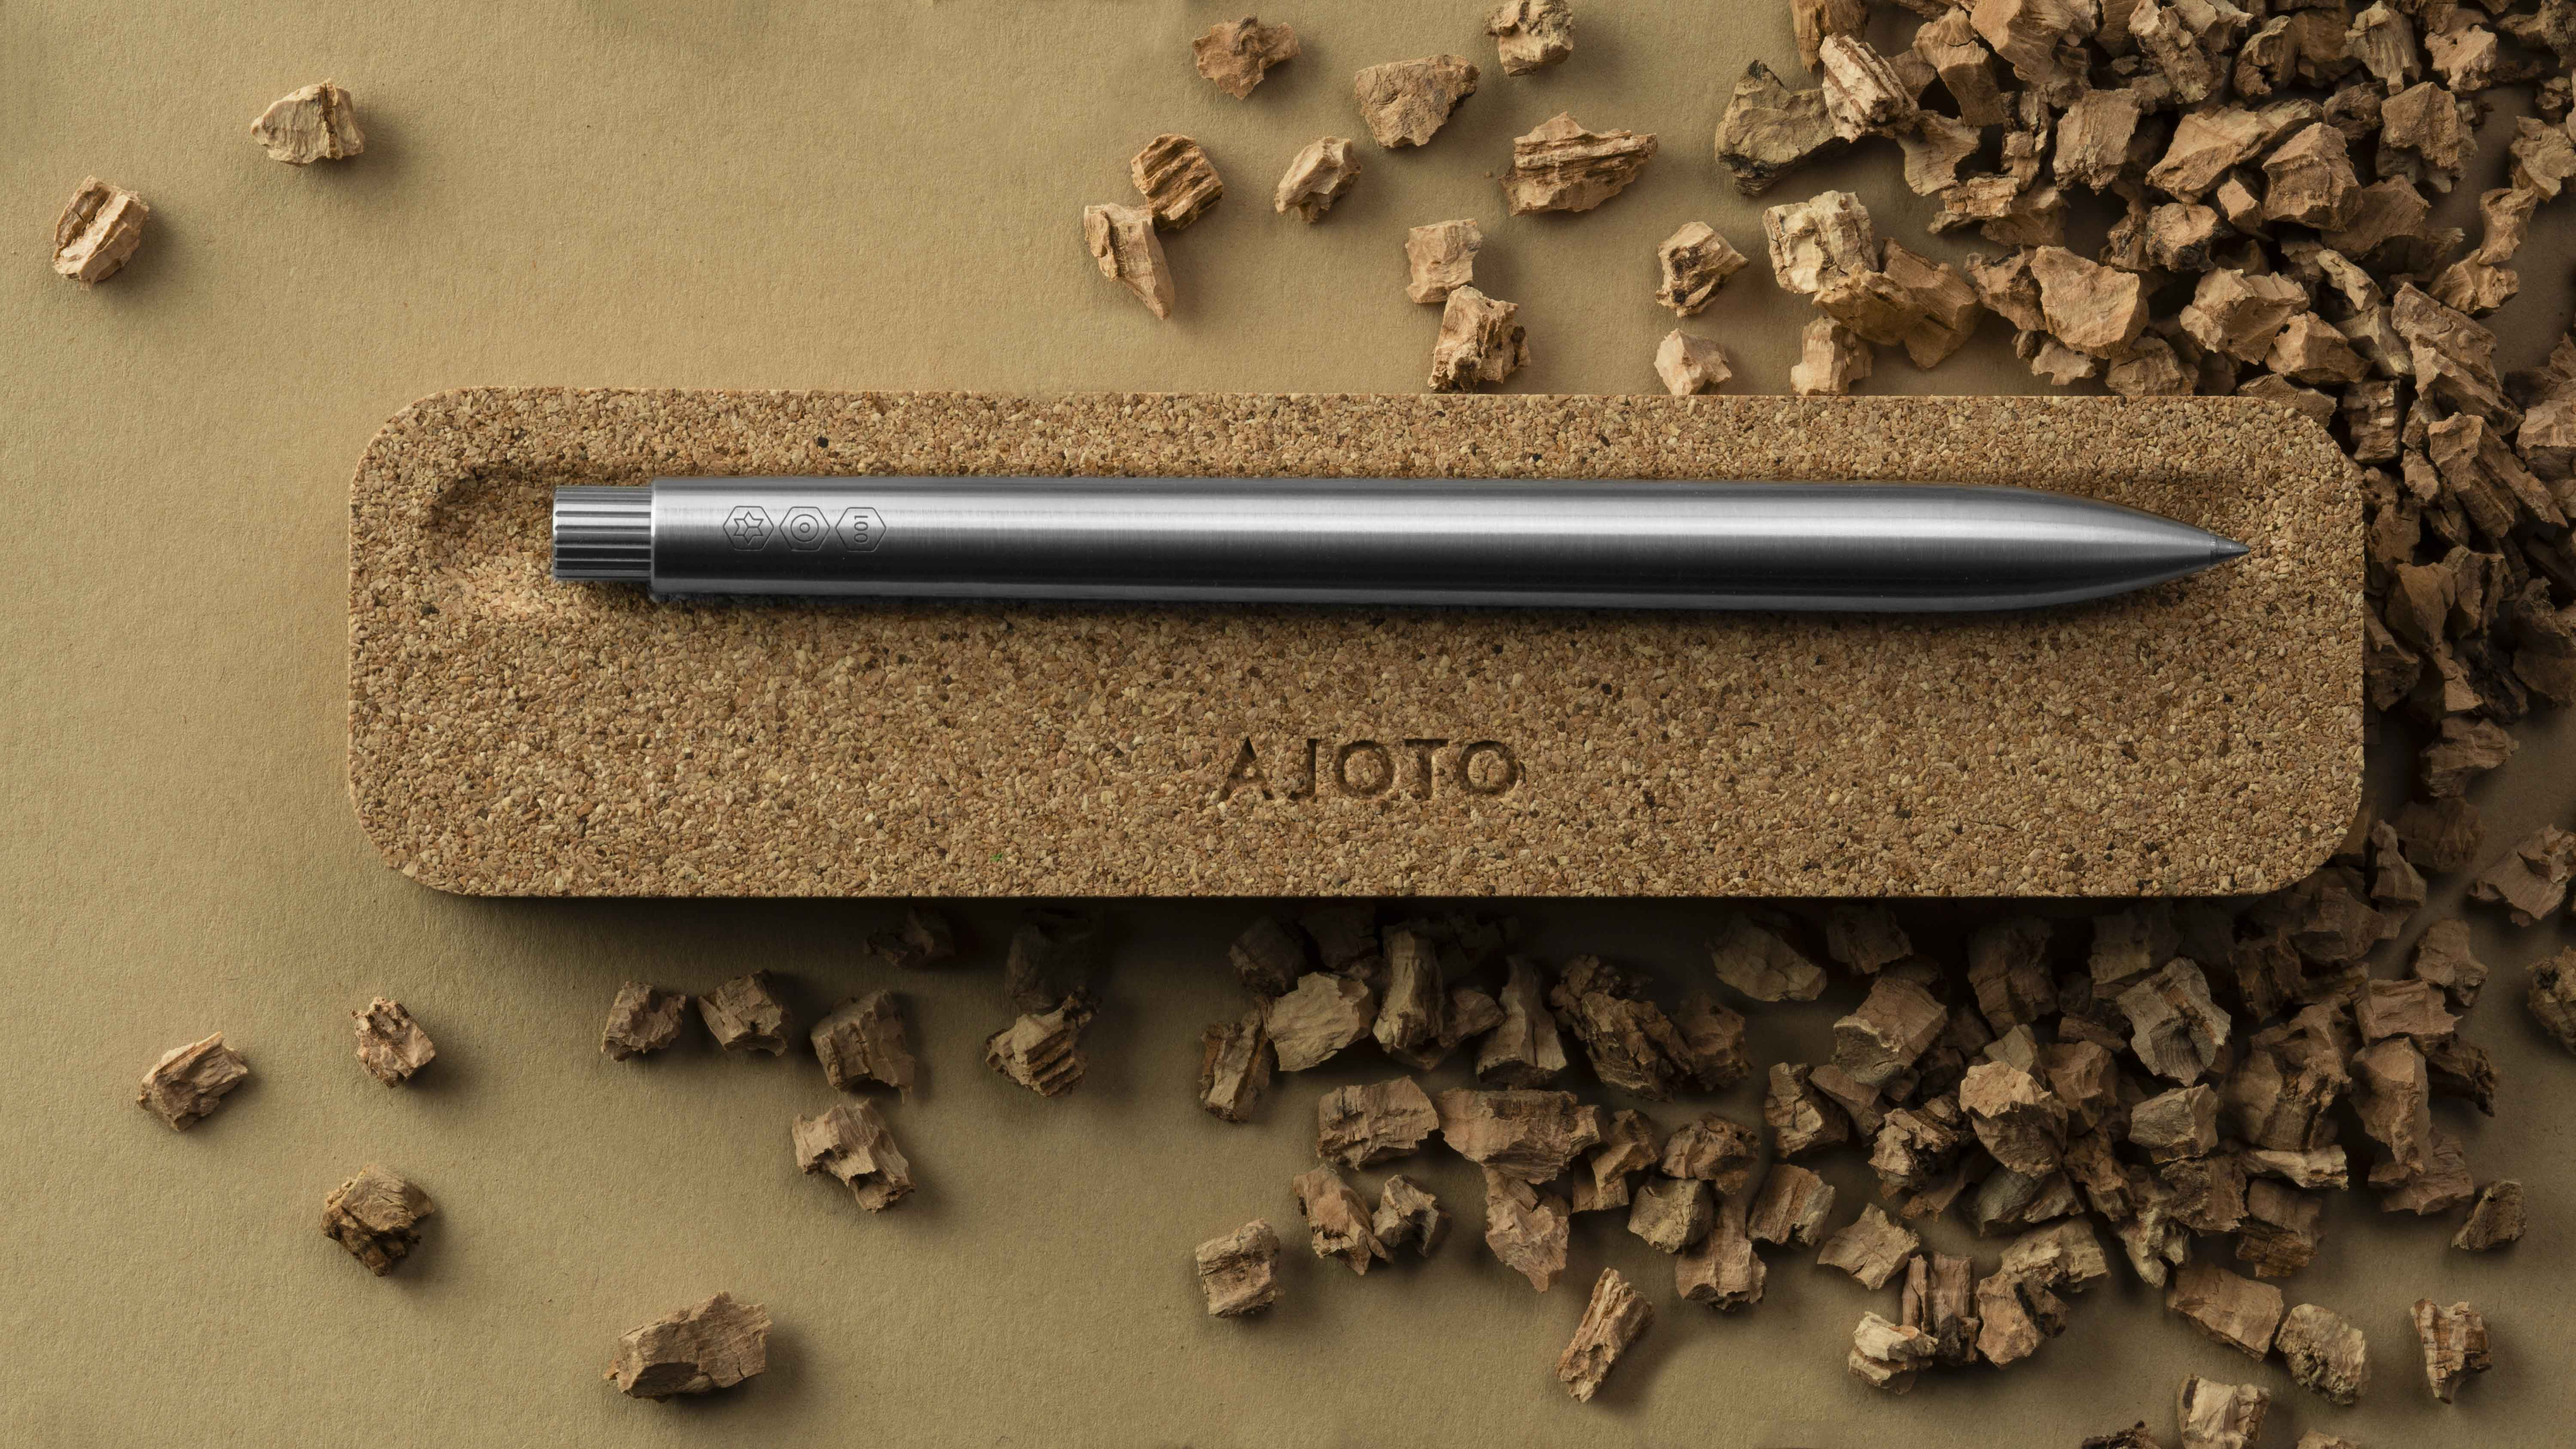 Ajoto In-House Design Team Create New Upgrade to Their Pen Packaging